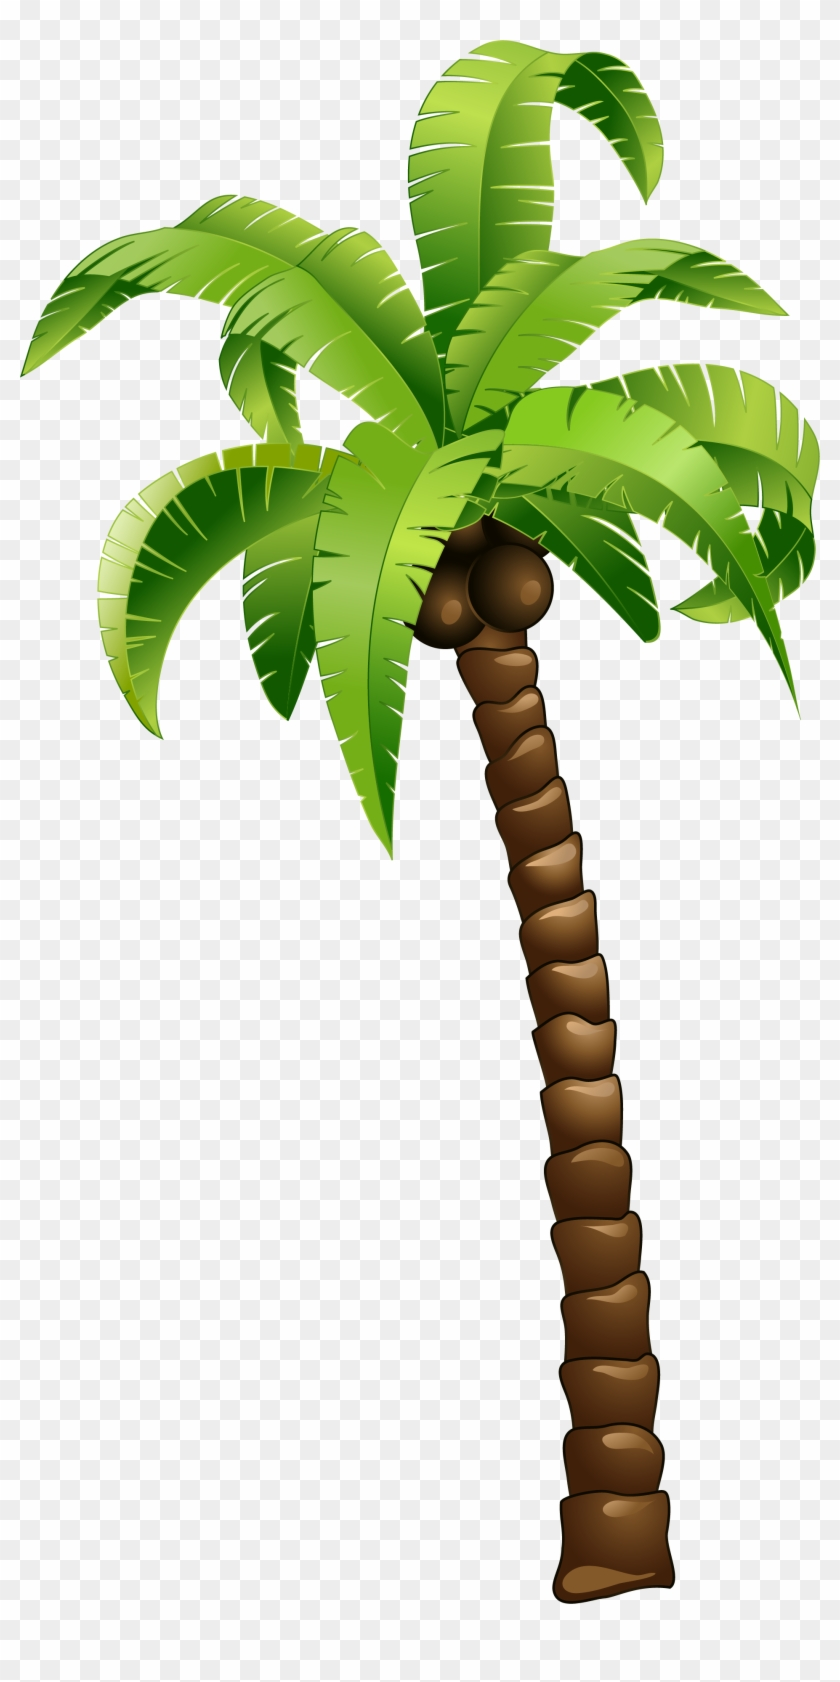 Cartoon Green Coconut Tree Cartoon Palm Tree Png Free Transparent Png Clipart Images Download Download and use them in your website, document or presentation. cartoon green coconut tree cartoon